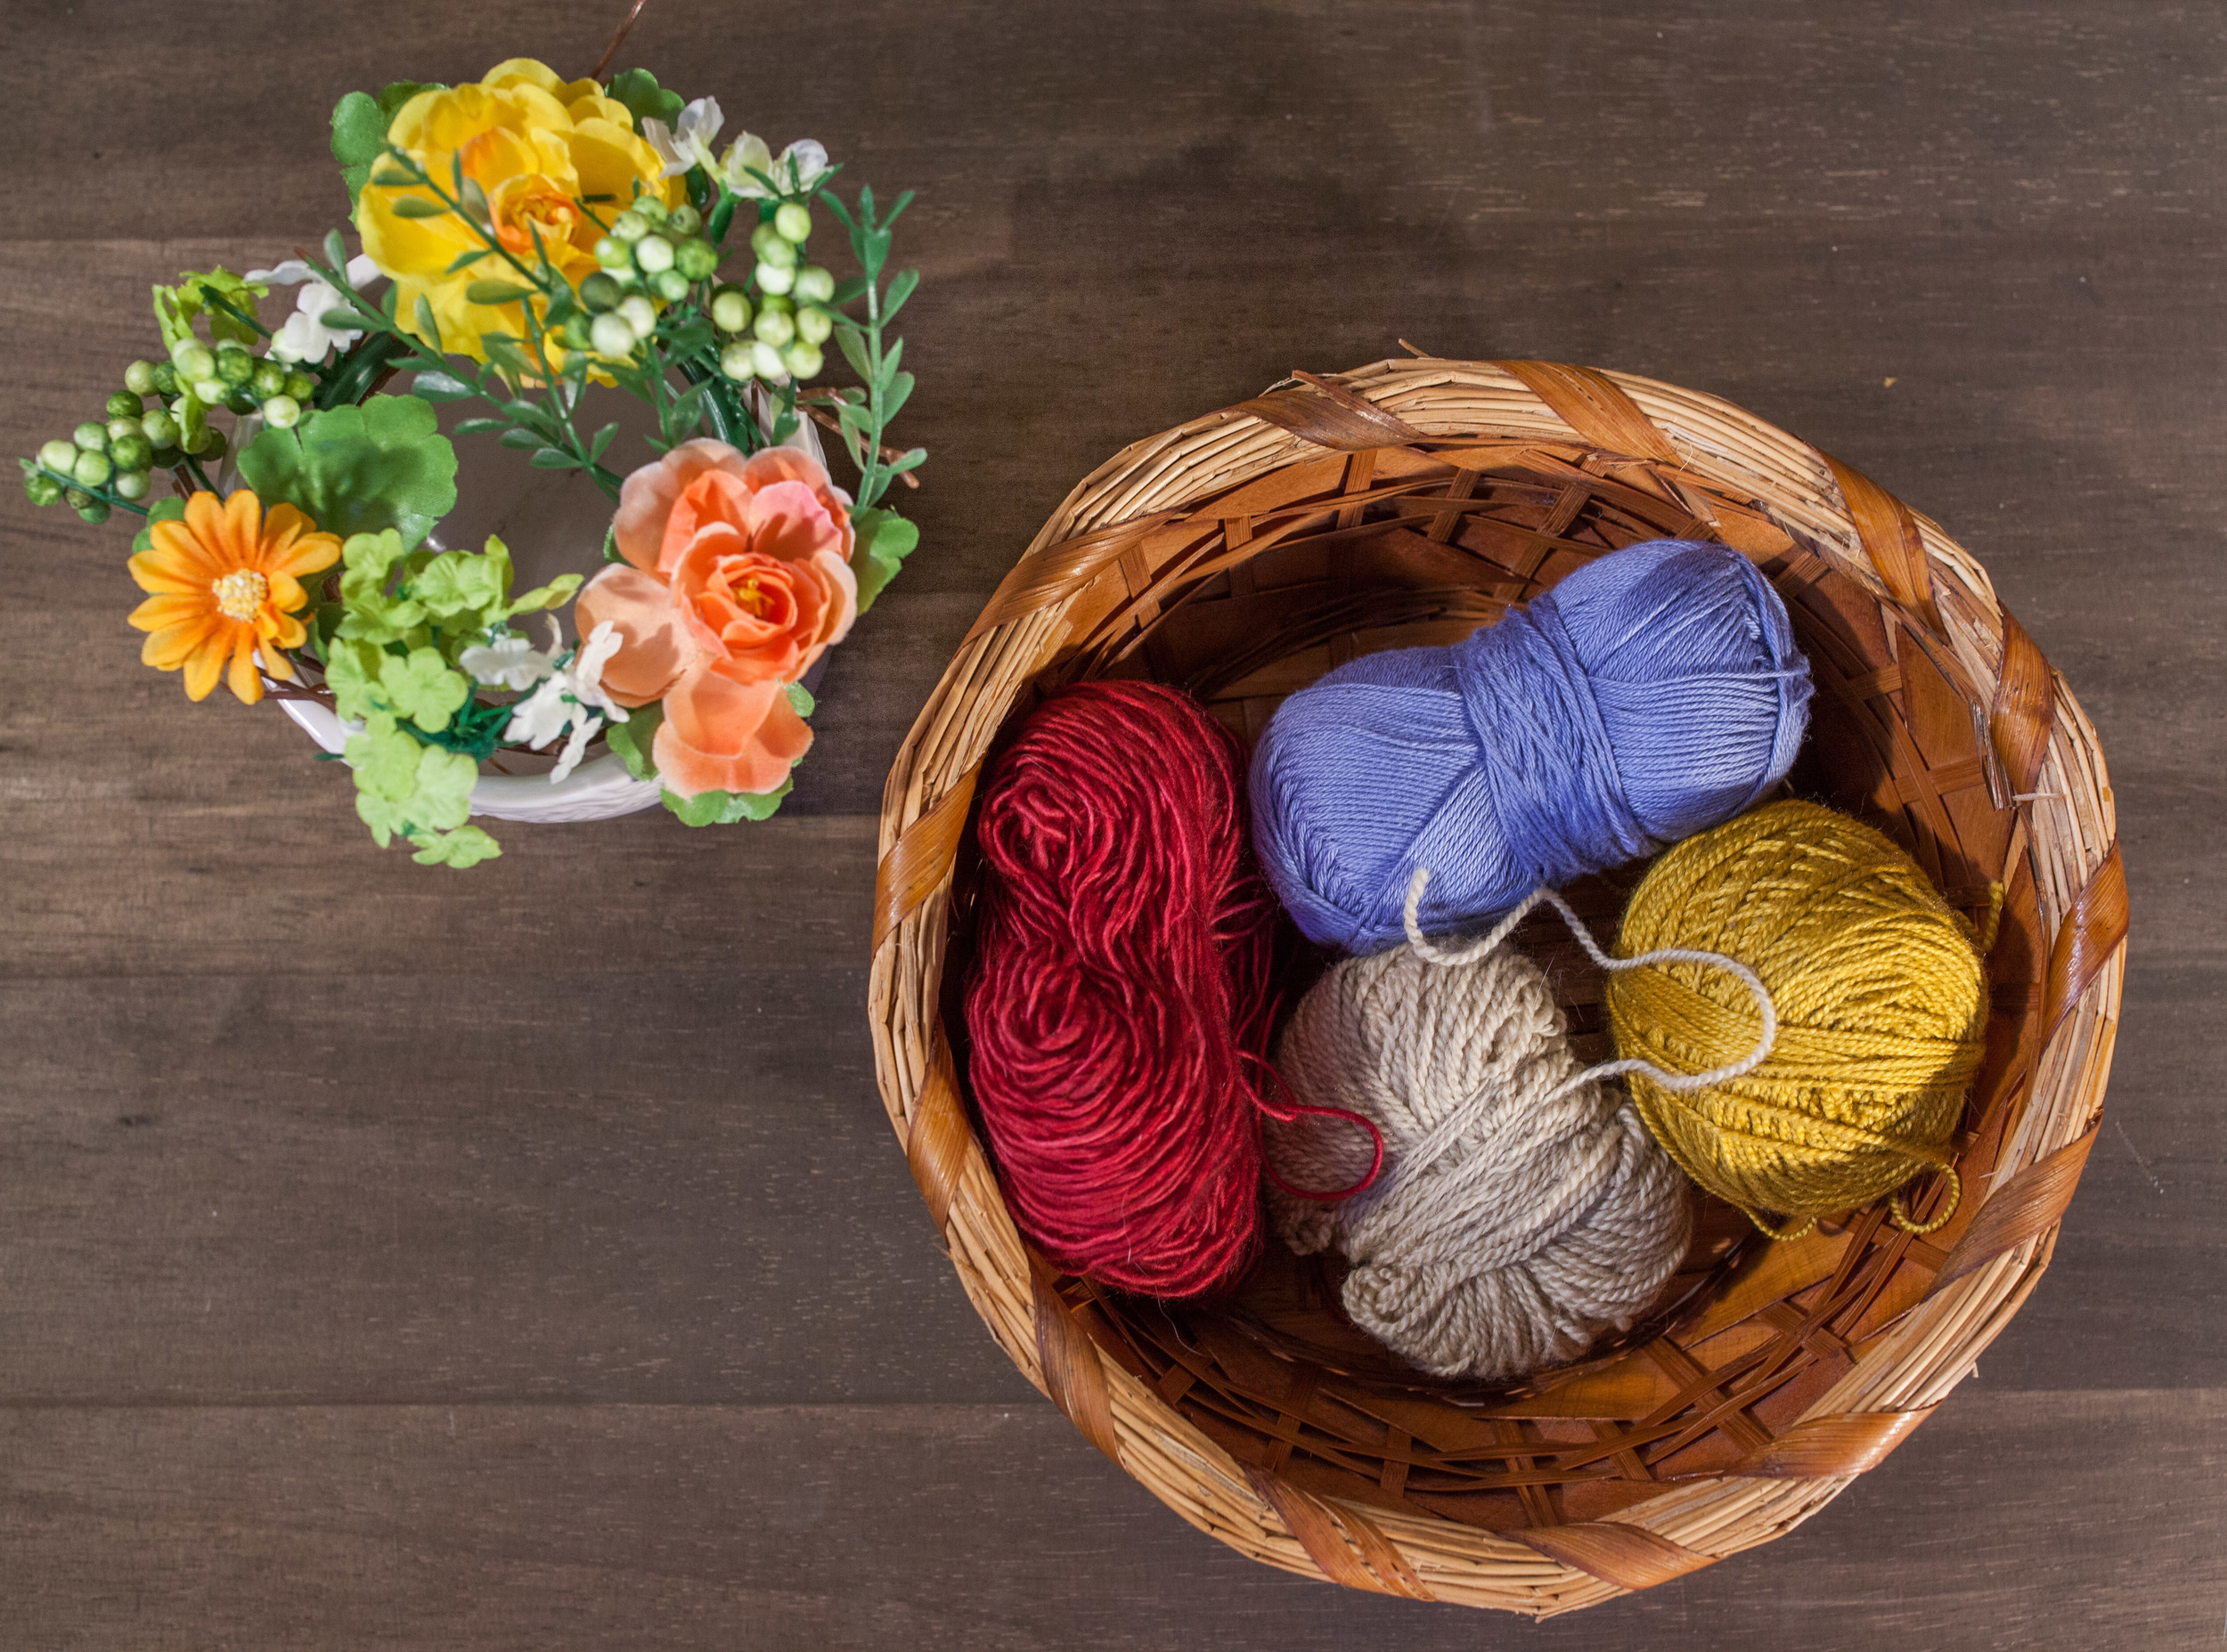 Pictured: flowers and four different types of fingering weight yarn.